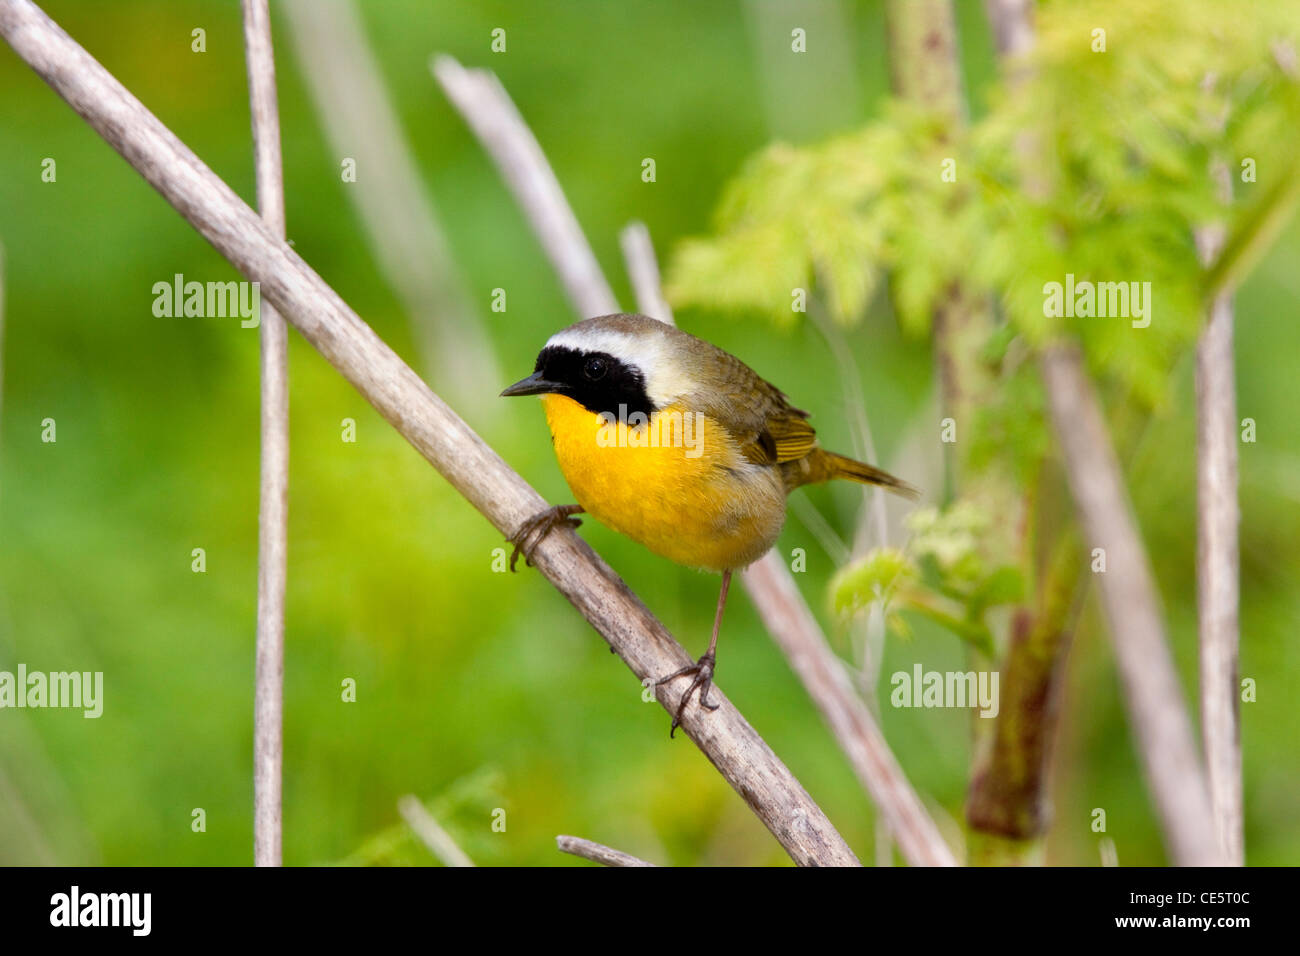 Common Yellowthroat Geothlypis trichas Elkhorn Slough, California, United States 23 April Adult male Parulidae - Stock Image